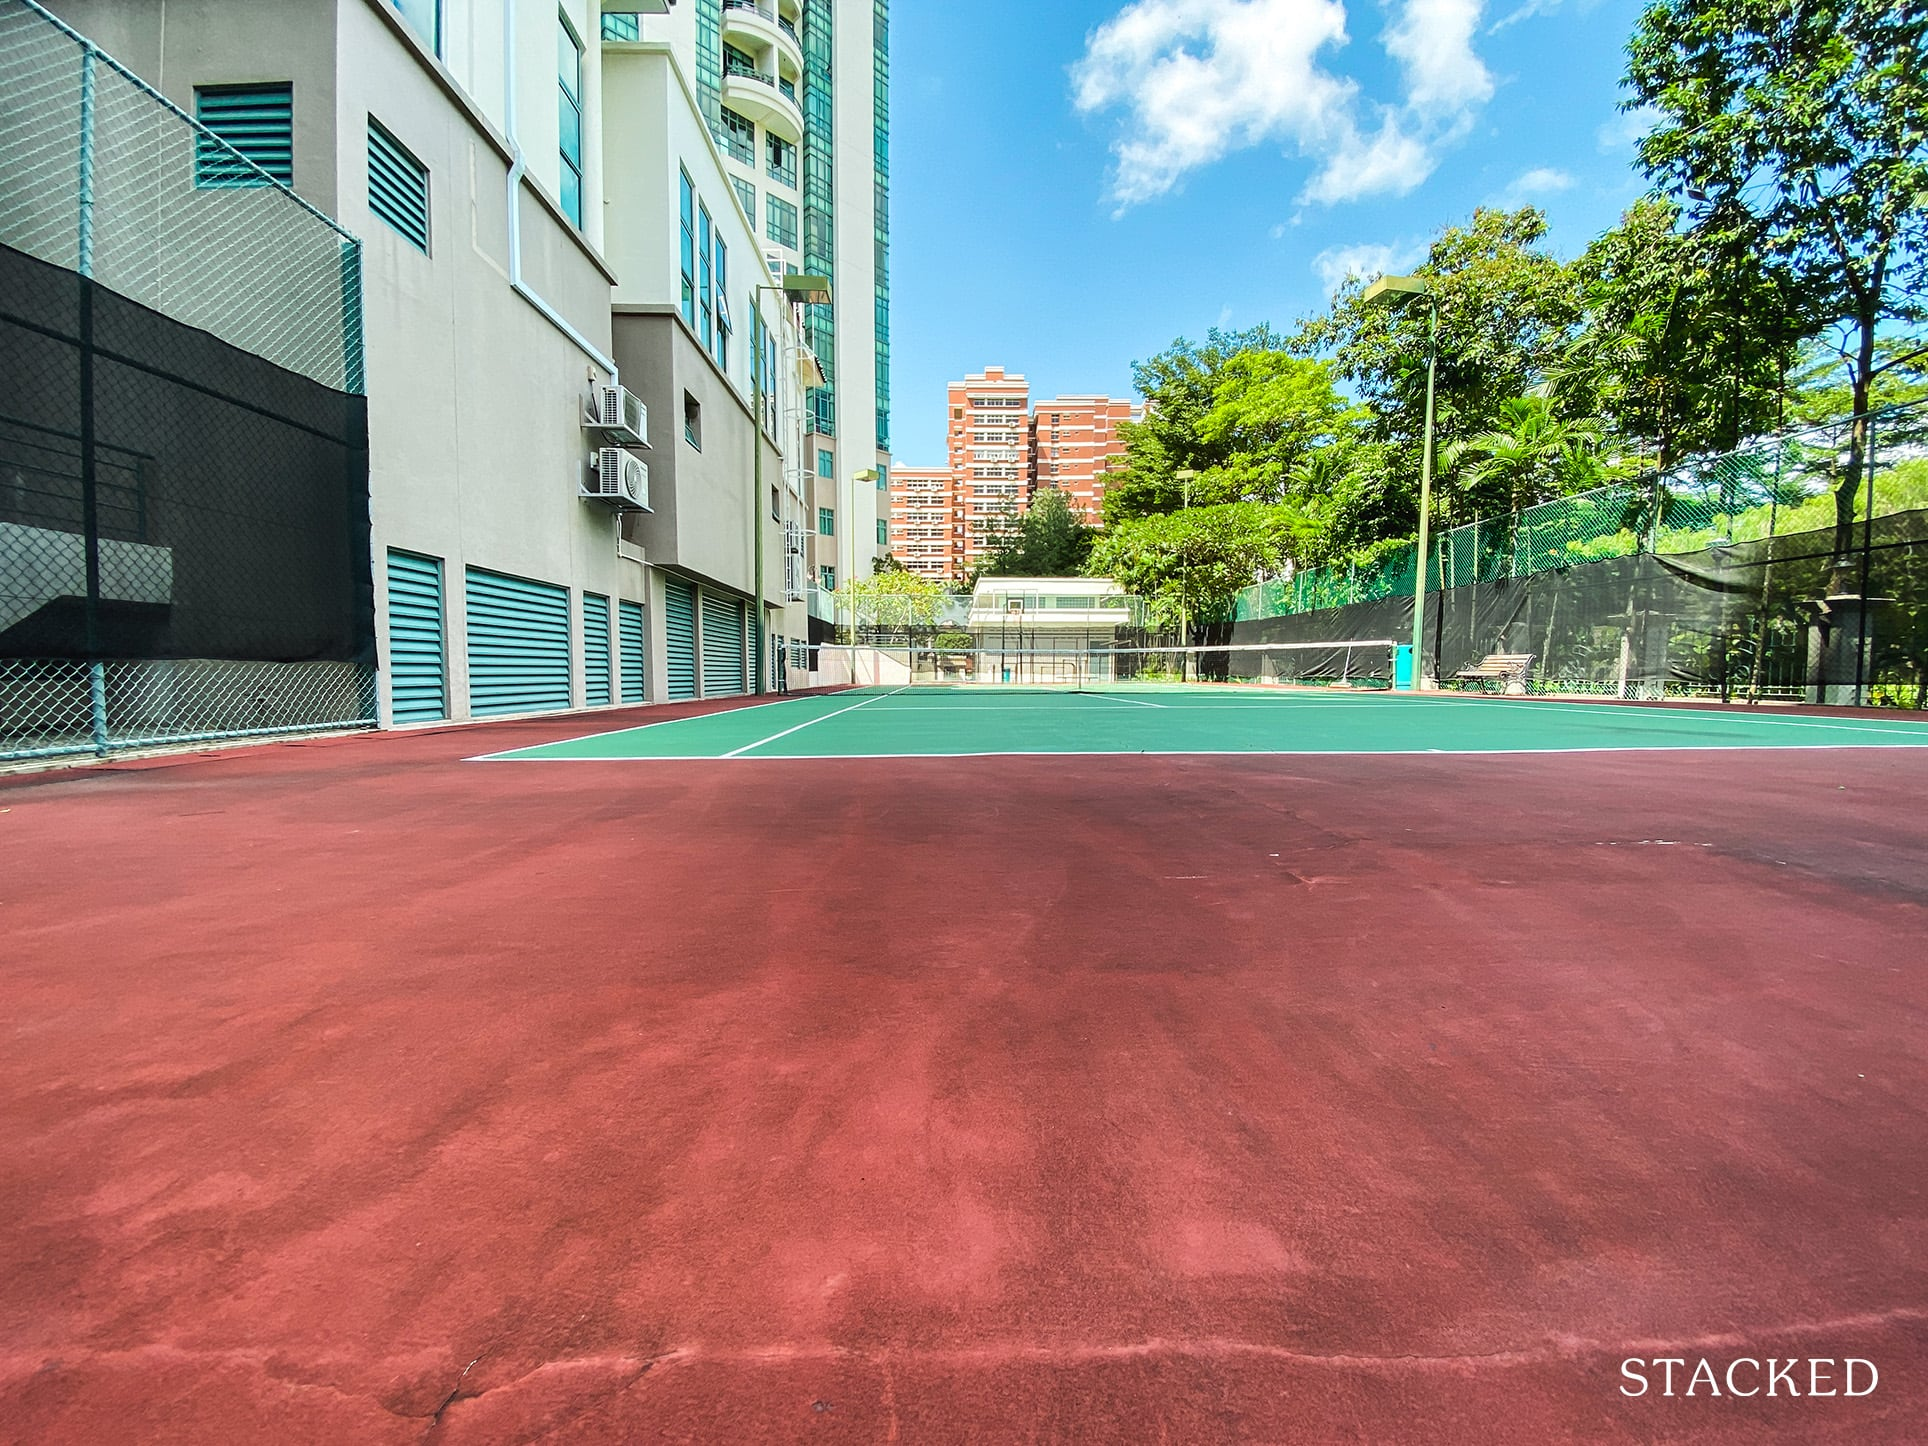 Tanglin regency tennis court